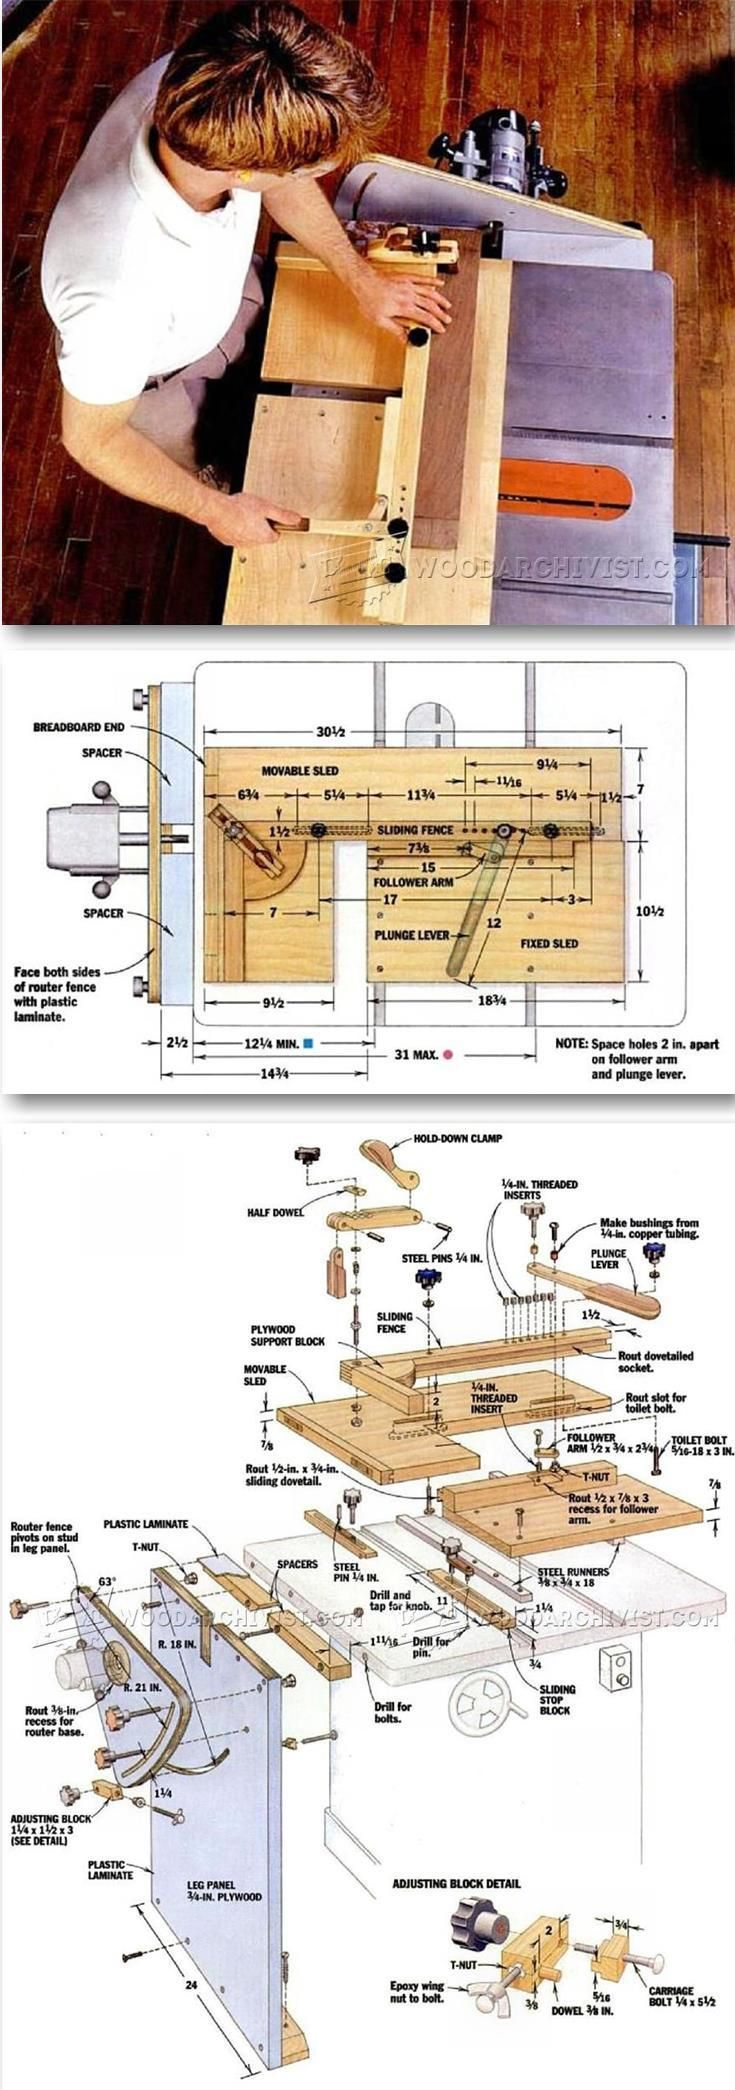 DIY Mortise and Tenon Jig - Joinery Tips, Jigs and Techniques   WoodArchivist.com